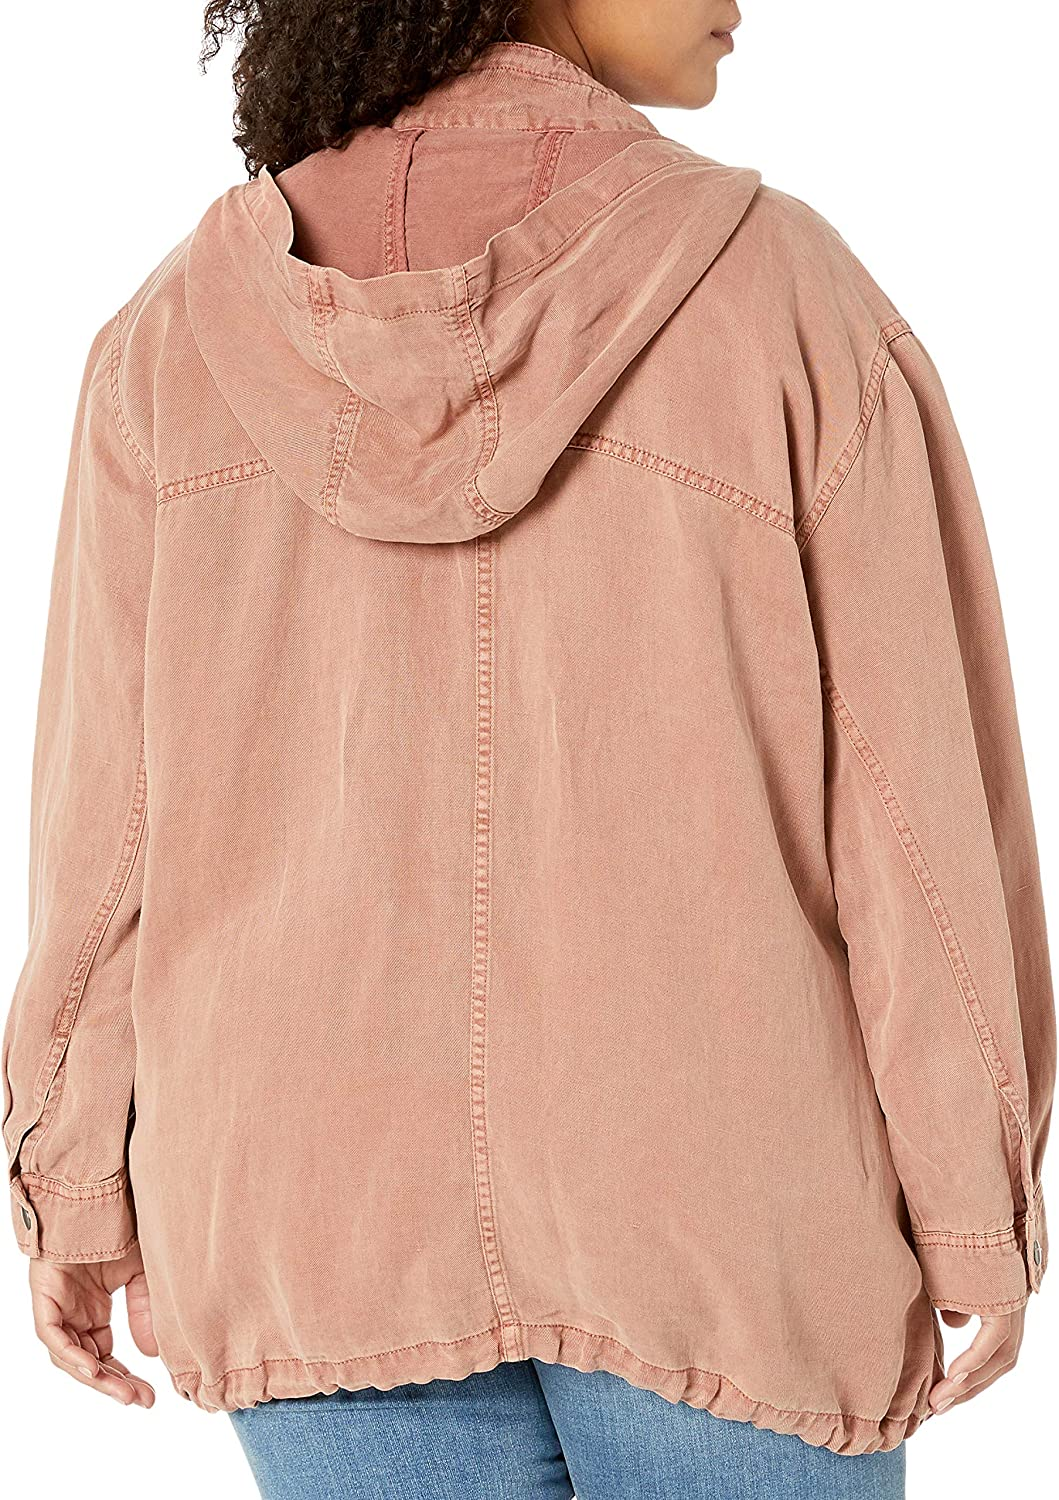 Lucky Brand Womens Size Plus Hooded Jacket